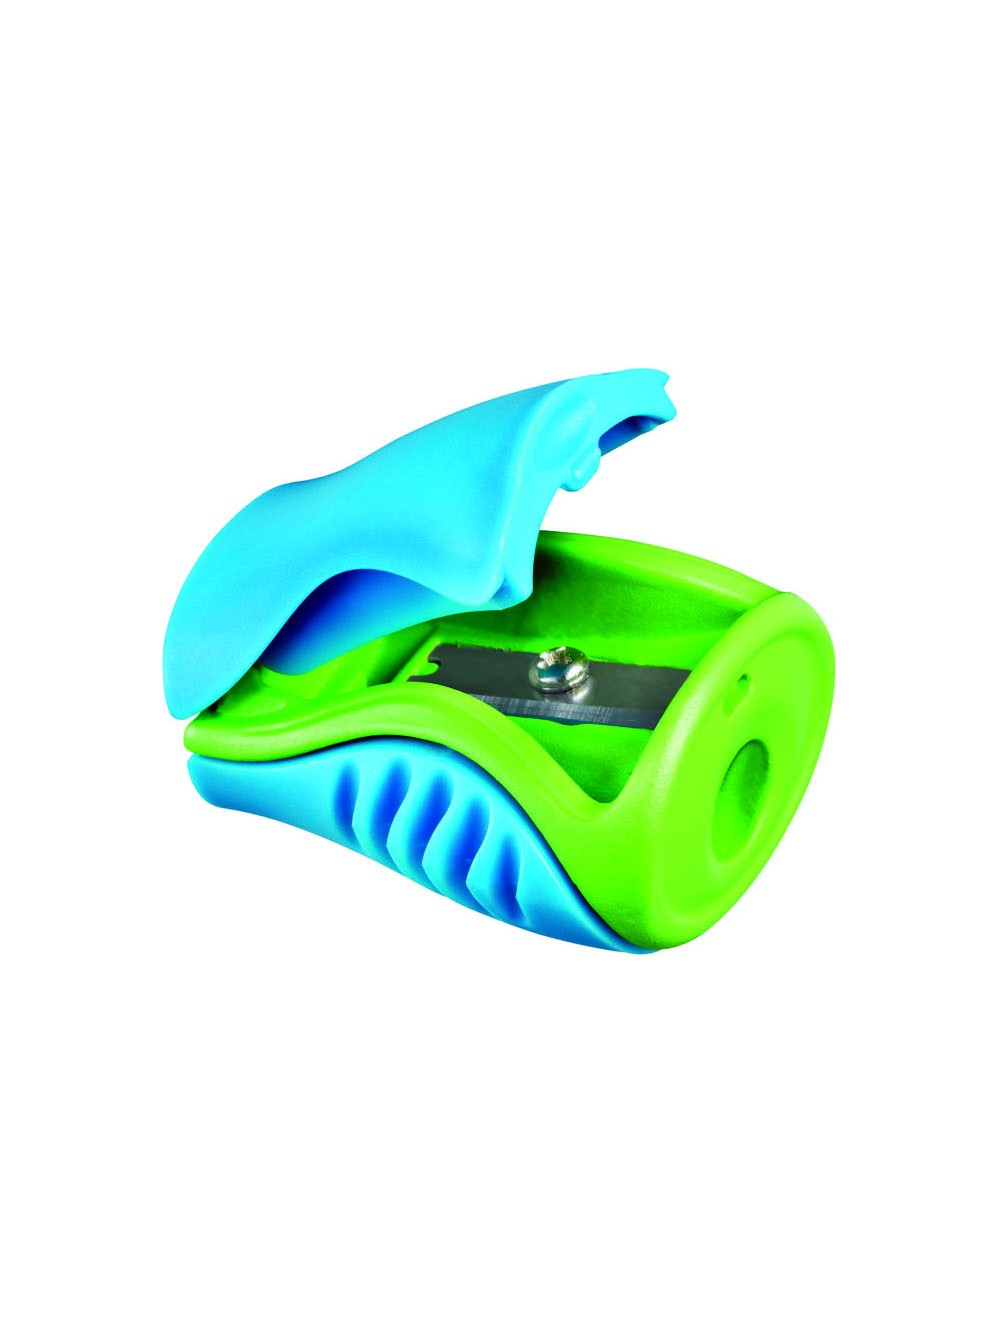 MAPED PENCIL SHARPENER BOOGY 1 HOLE CANISTER